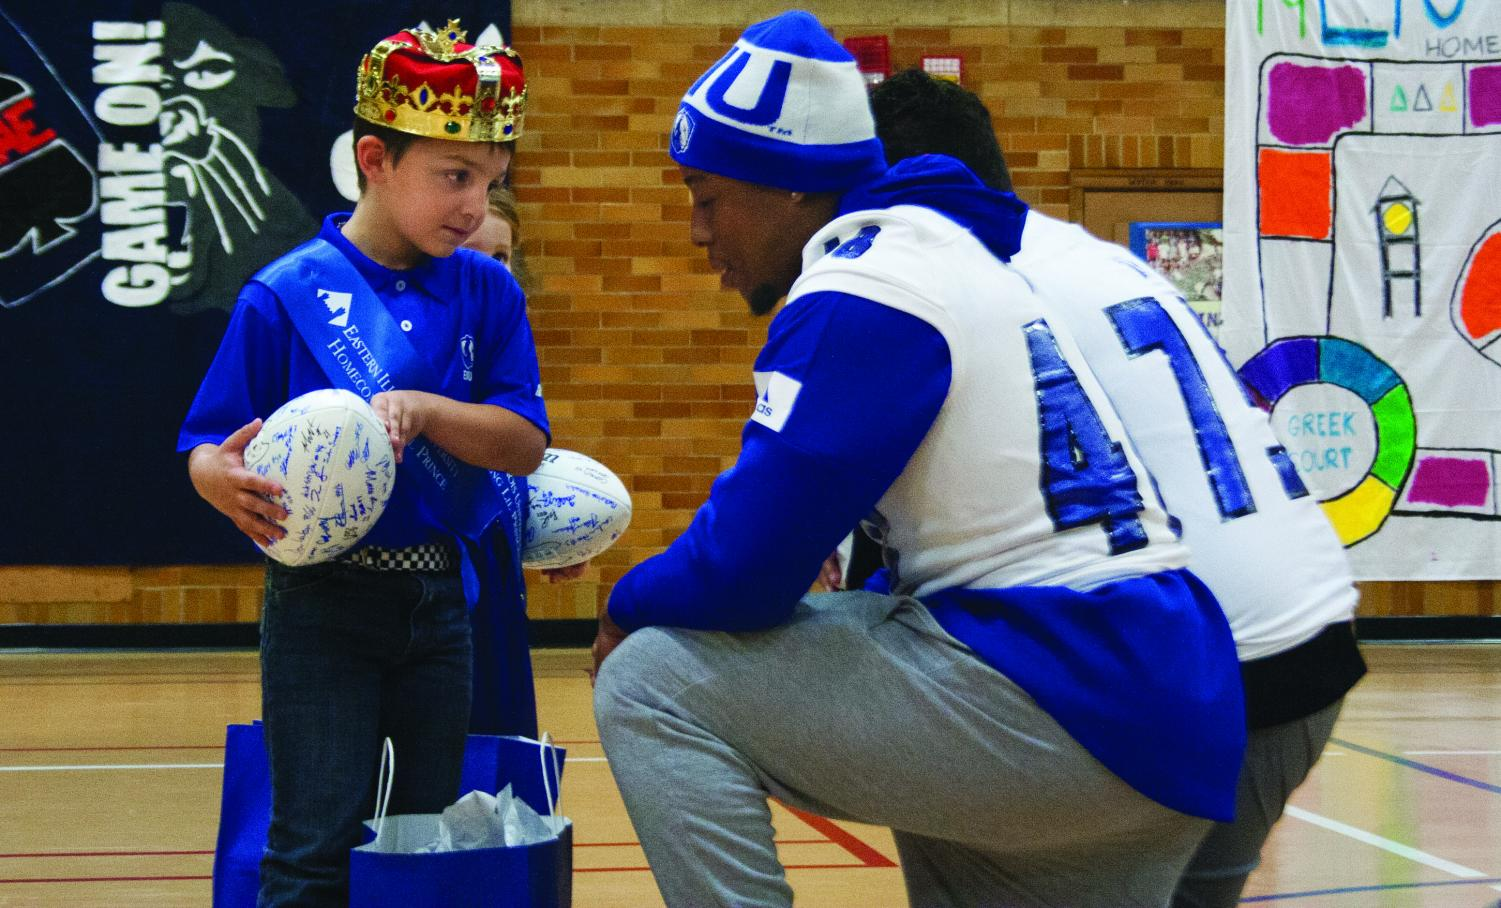 Alex Smith, a junior accounting major, and football player, hands a goodie bag to Eastern's Little Prince, Mason Koehler, during coronation and pep rally in McAfee Gym on Thursday night. During the pep rally, sororities, fraternities, cheerleaders, and the pink panthers competed in games to win prizes.